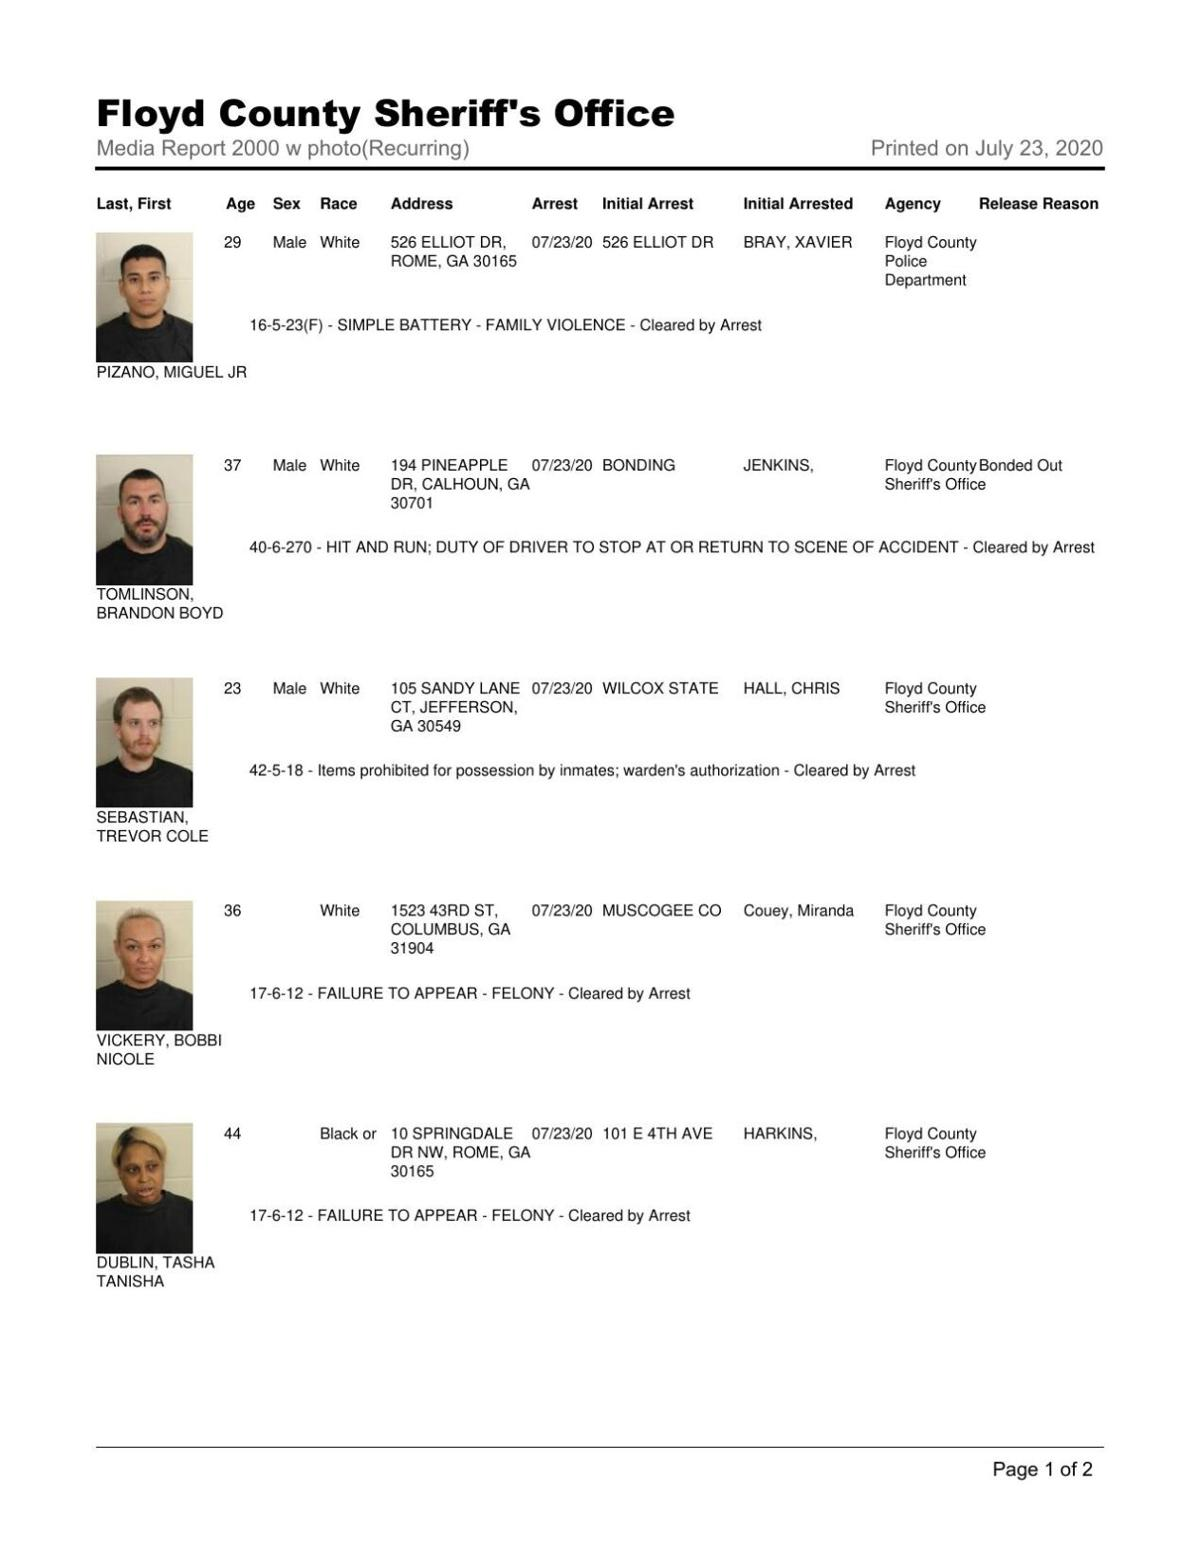 Floyd County Jail report for Thursday, July 23